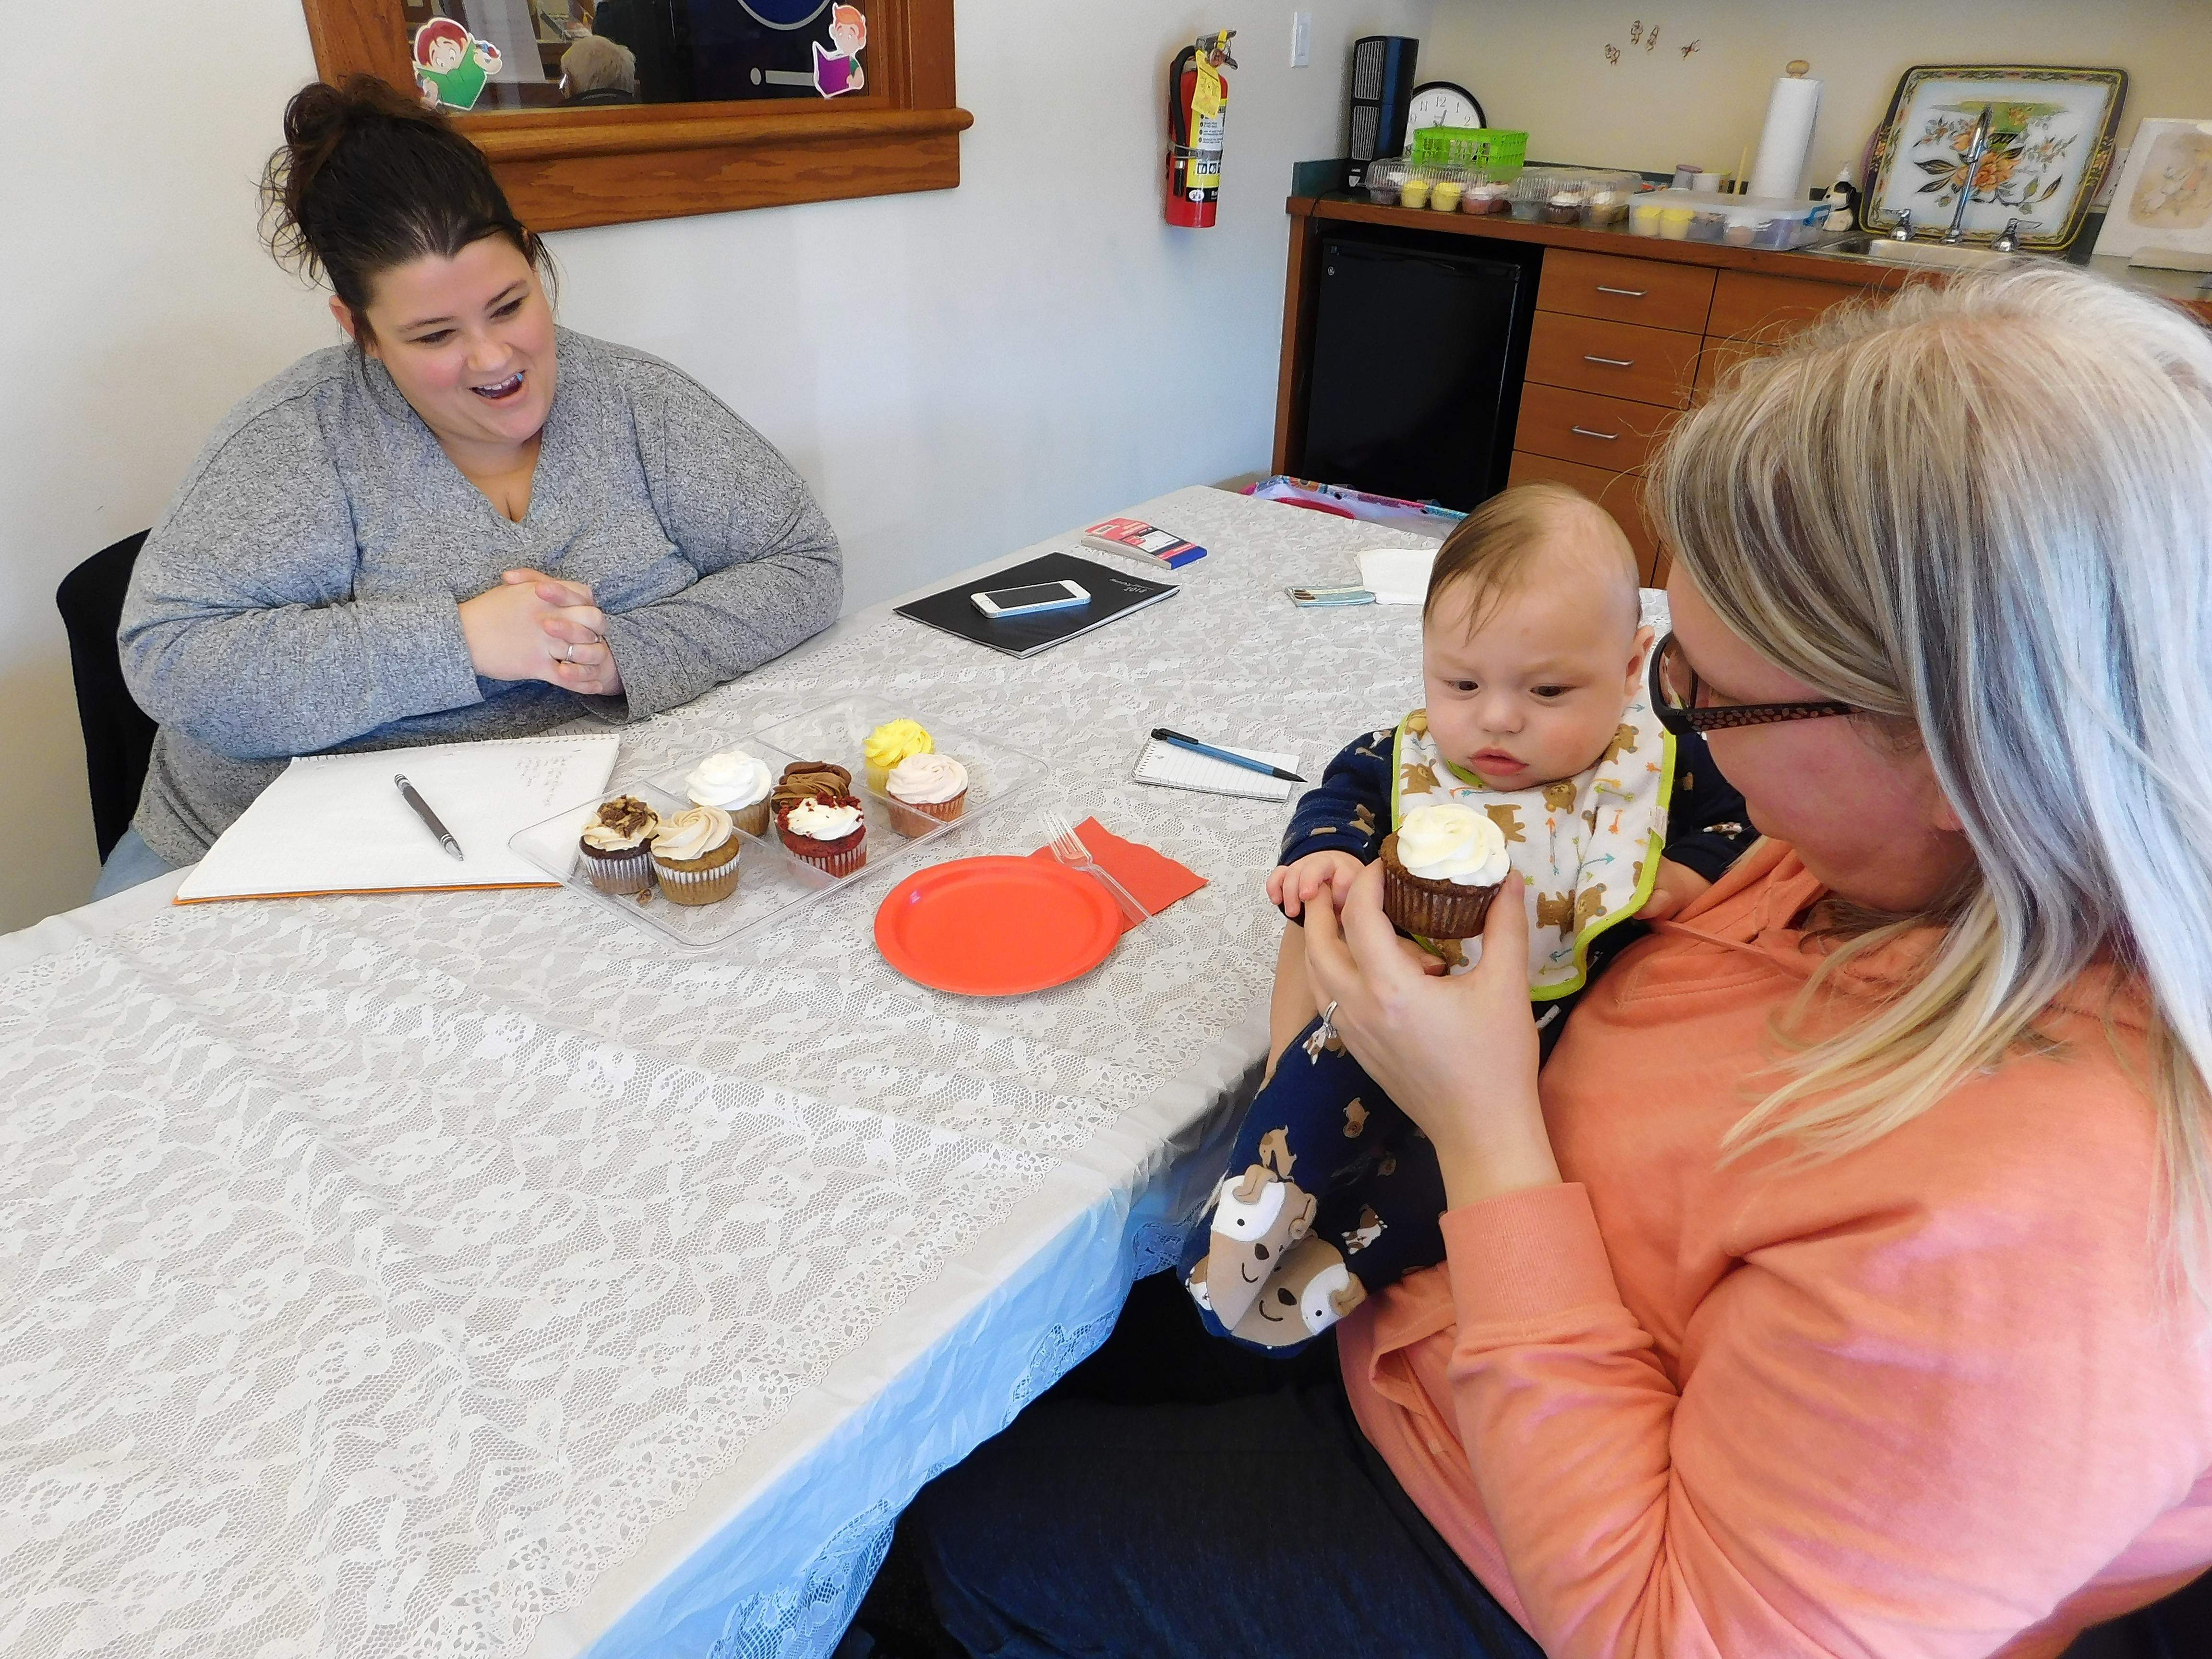 Alecia Schnaiter (left), owner of Sweet Treats in Benton, spent last Saturday holding tastings at the Benton Public Library. Several brides stopped by to sample Schnaiter's cake flavors, including Sarah Nelson and her 4-month-old son, Jacob. Nelson will marry Peter Ksycki April 14 in Breese.